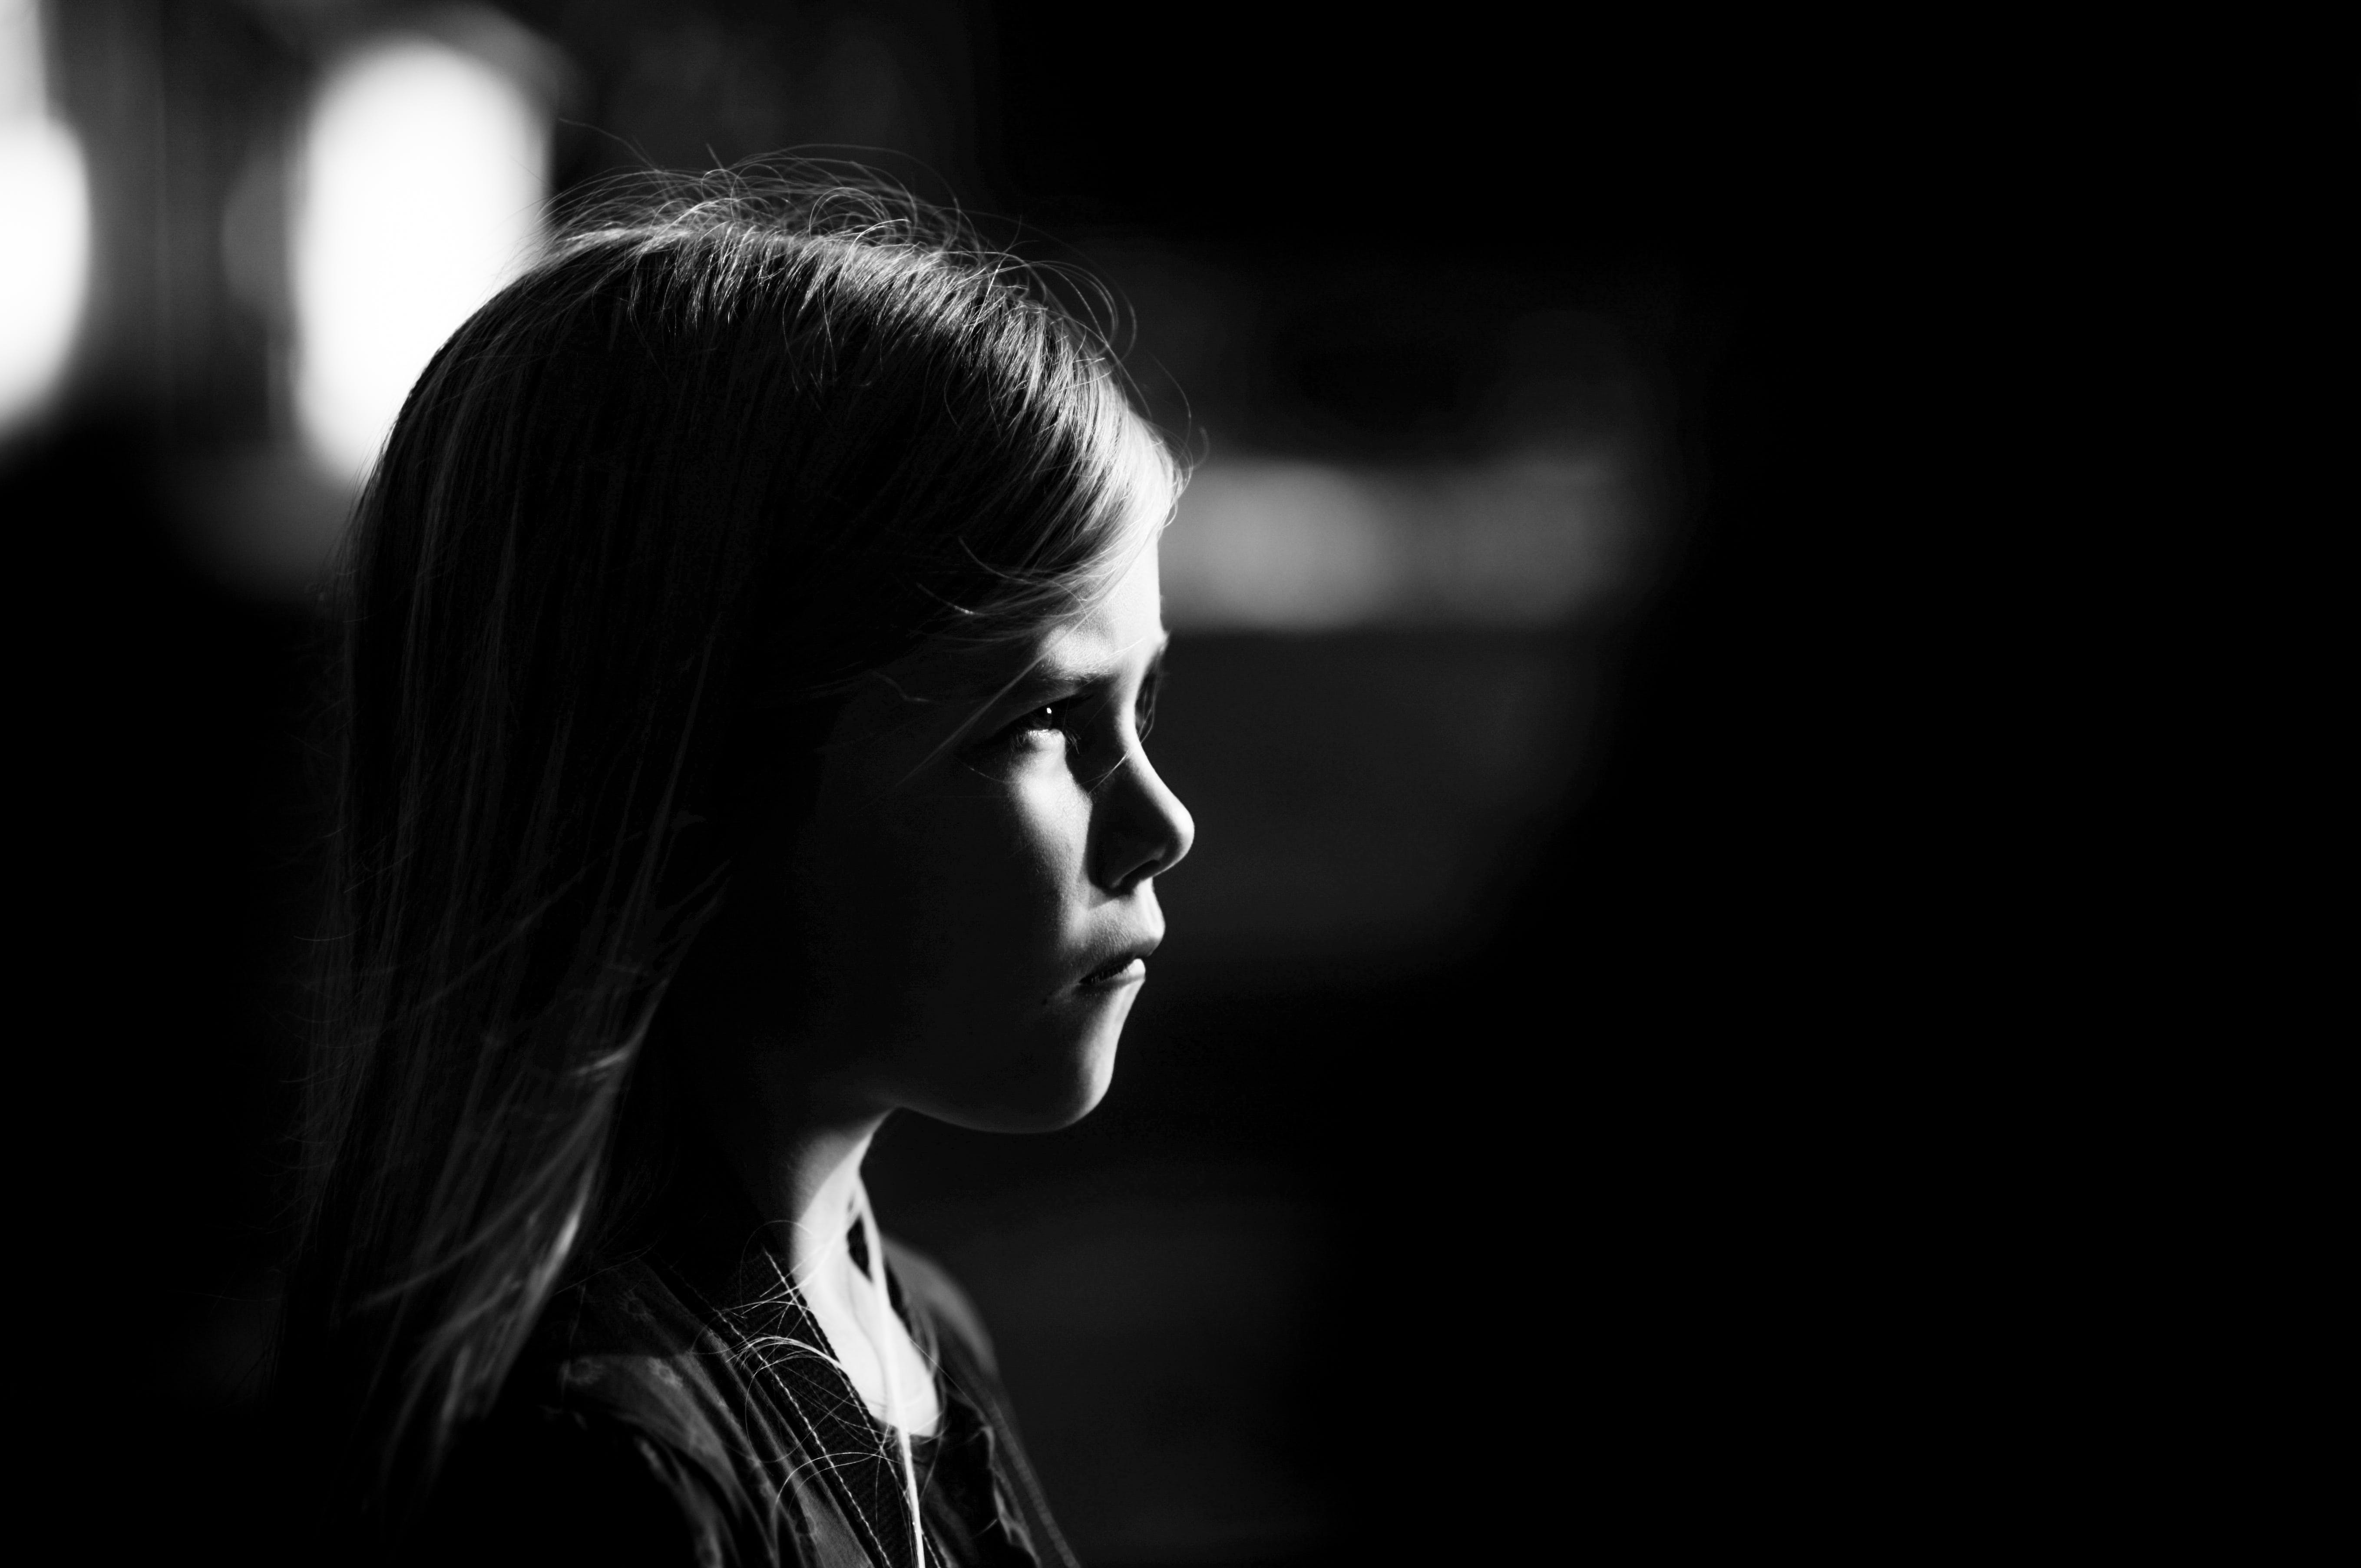 Grayscale Photography of Girl